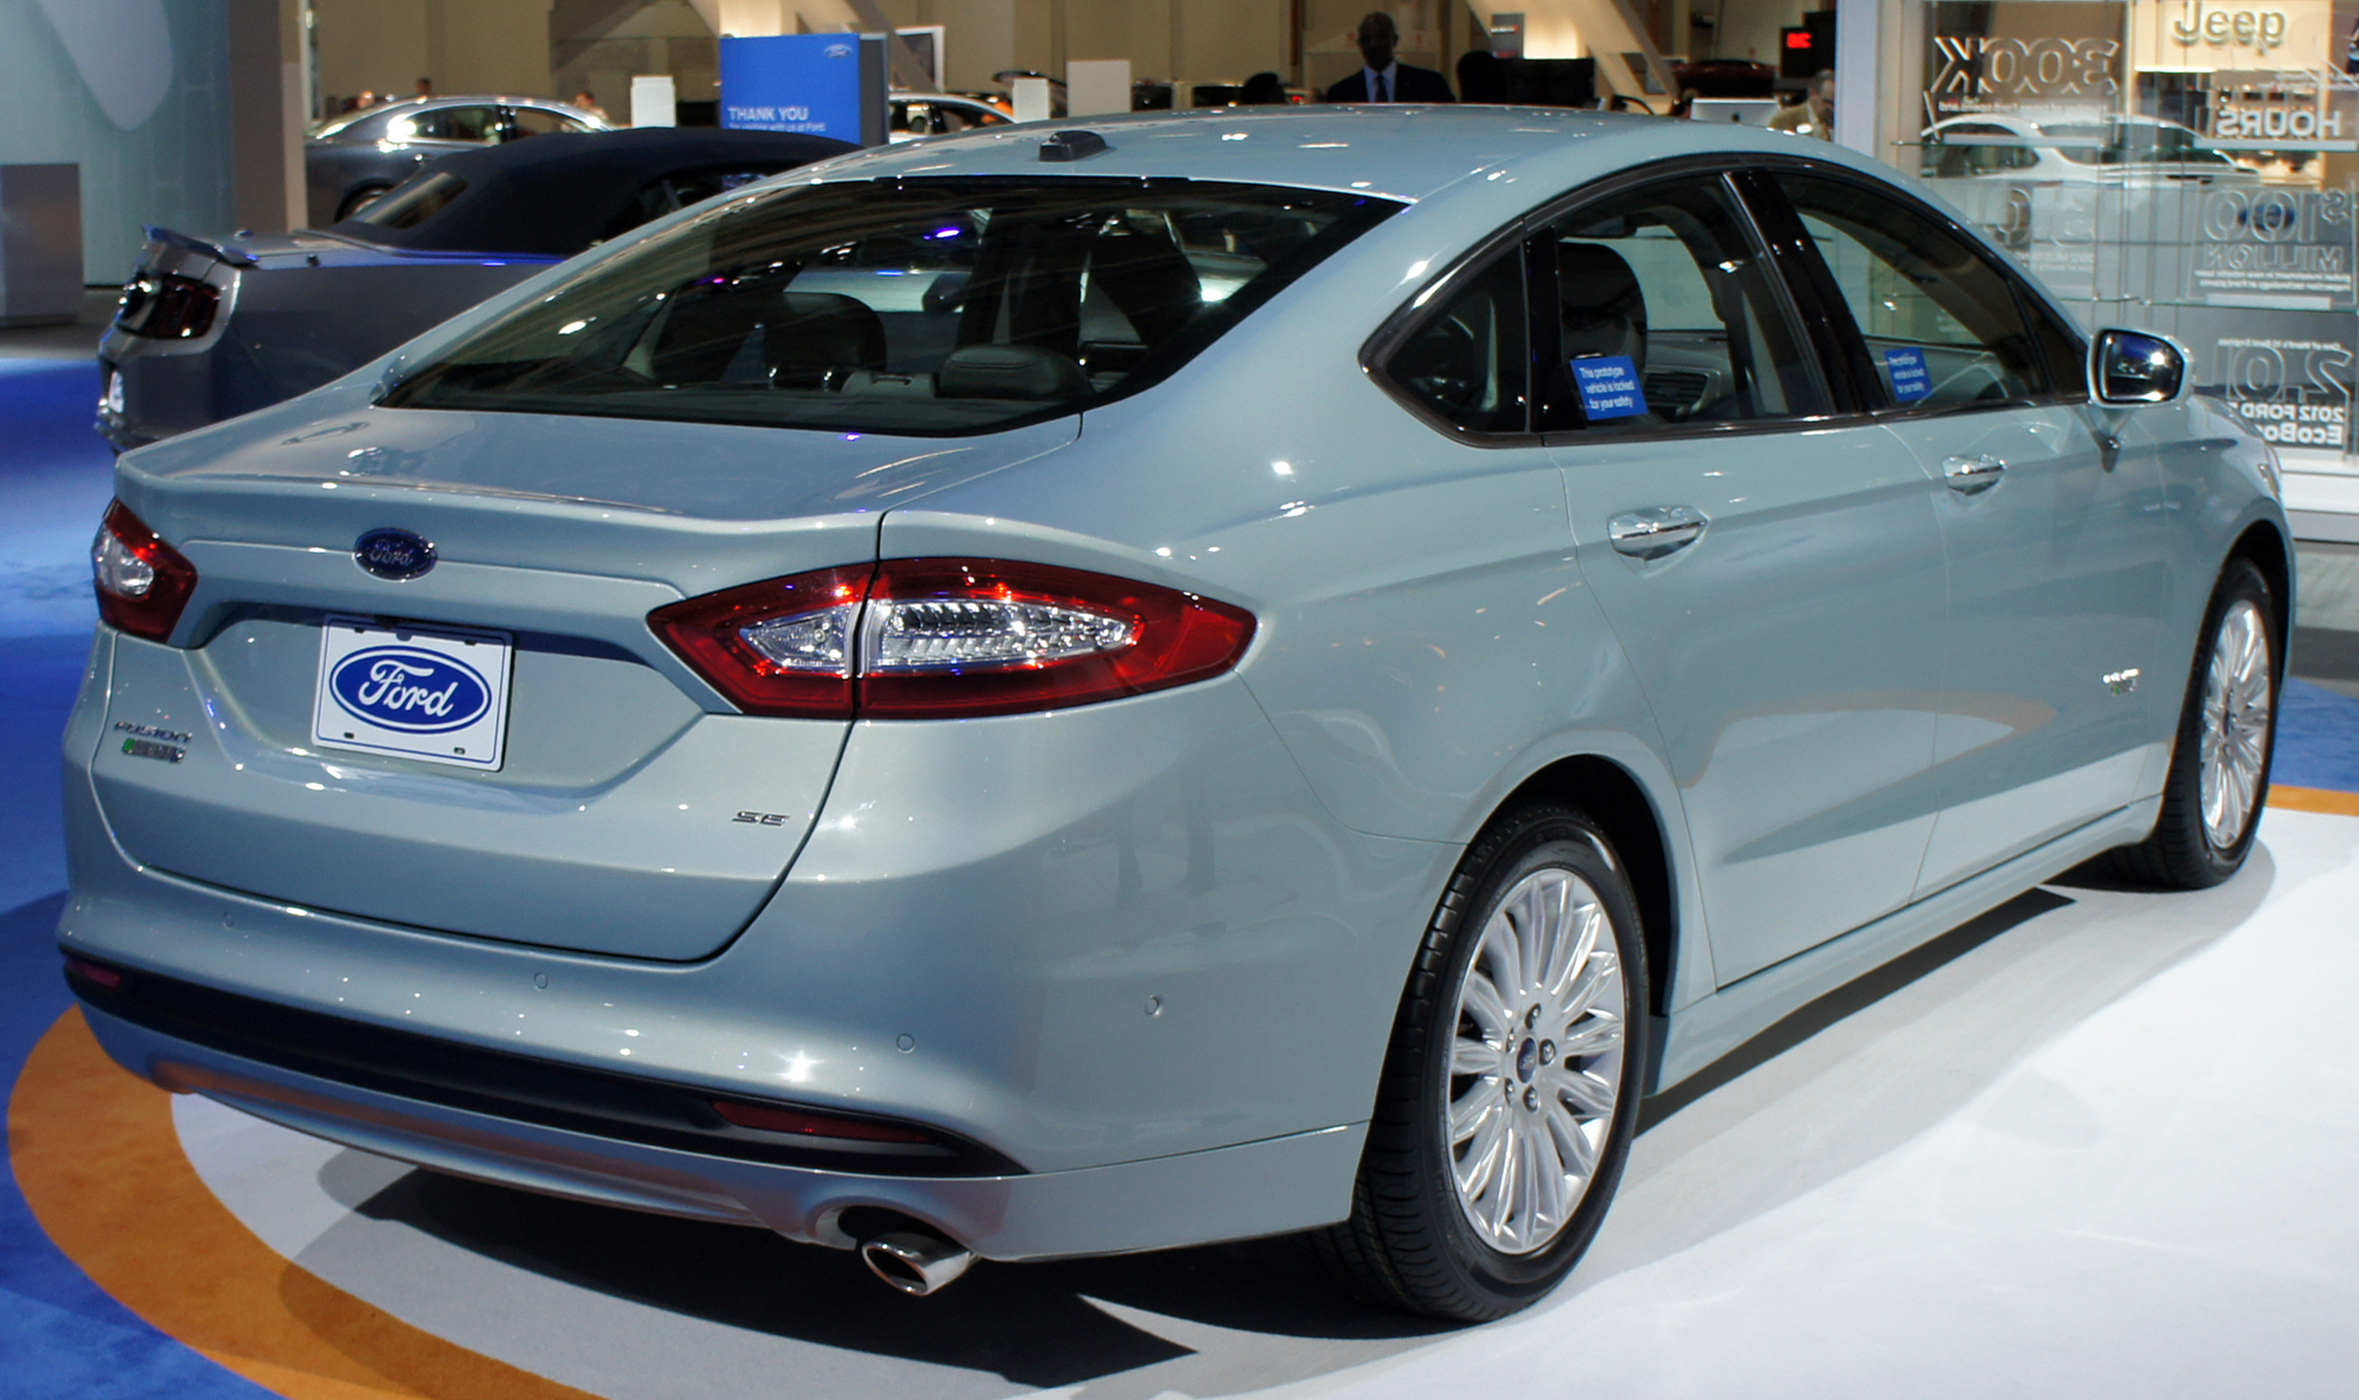 file ford fusion energi sel was sel 2012 0598 jpg wikimedia commons